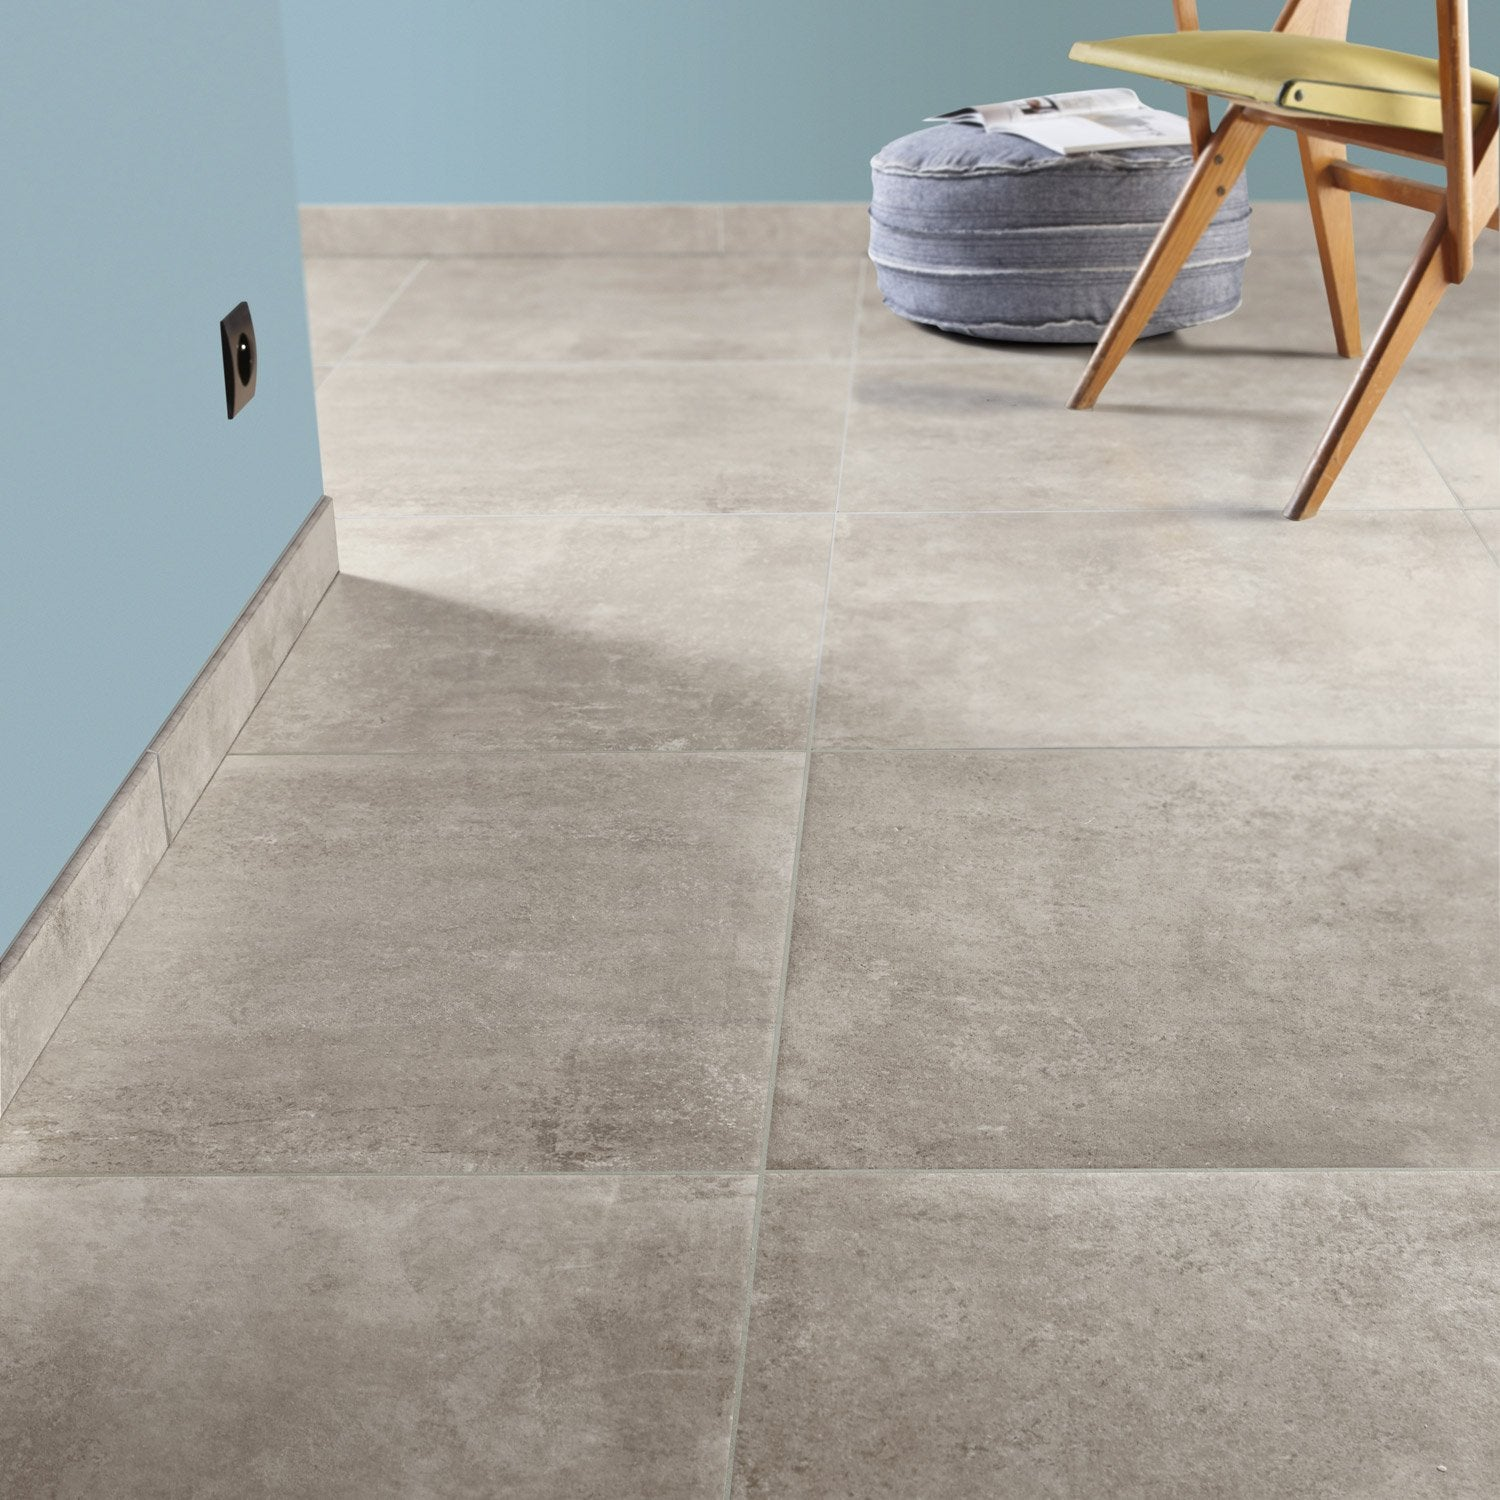 Carrelage pleine masse leroy merlin amazing formidable for Carrelage gatsby leroy merlin